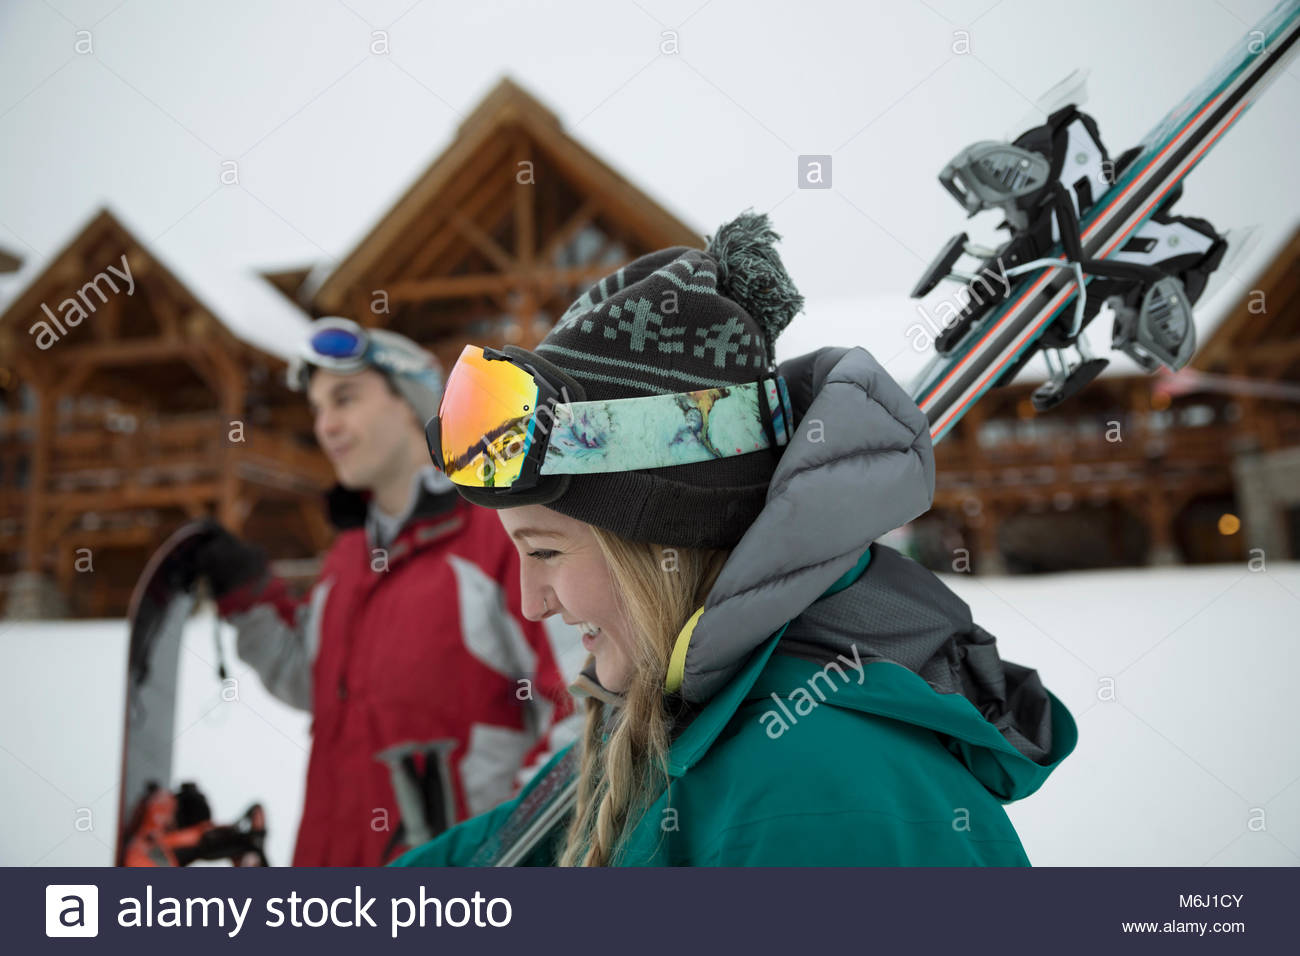 Smiling young female skier carrying skis outside ski resort lodge - Stock Image